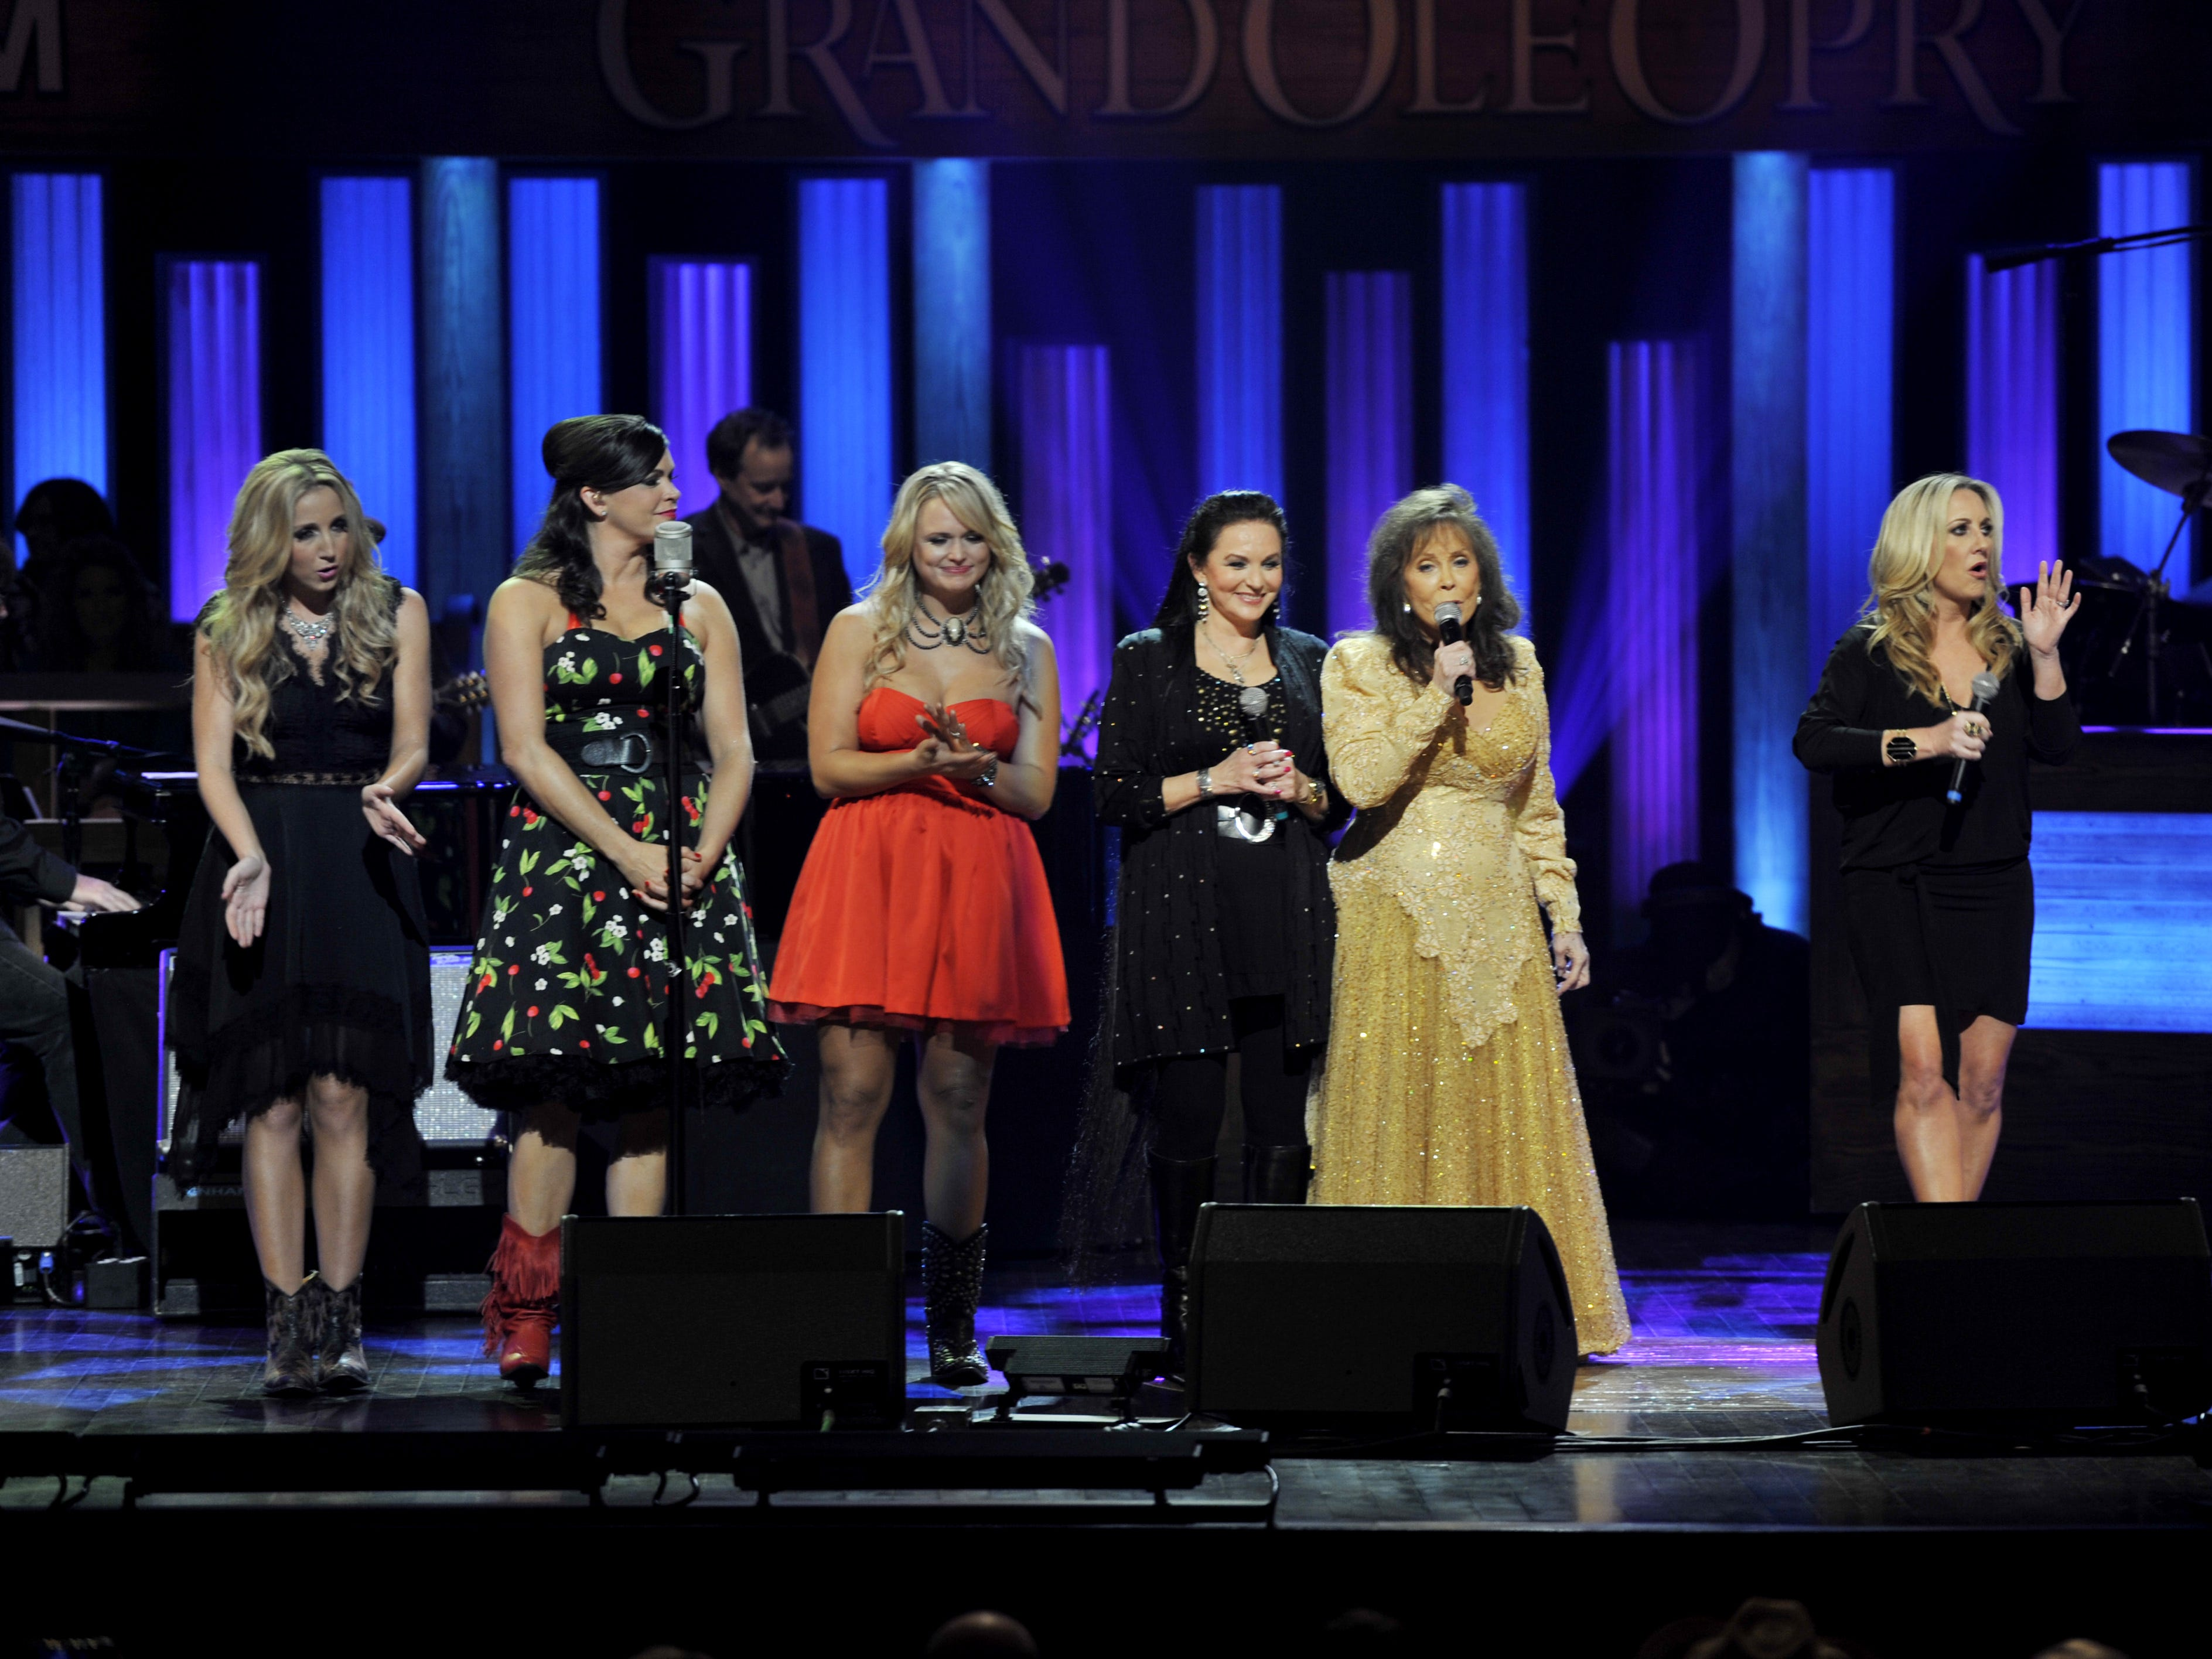 Loretta Lynn, second from right, is joined by Ashley Monroe, left, Angaleena Presley and Miranda Lambert of the Pistol Annies; her sister, Crystal Gayle; and Lee Ann Womack as Lynn performs onstage at Grande Ole Opry to celebrates her 50th anniversary as an Opry member on Sept. 25, 2012.